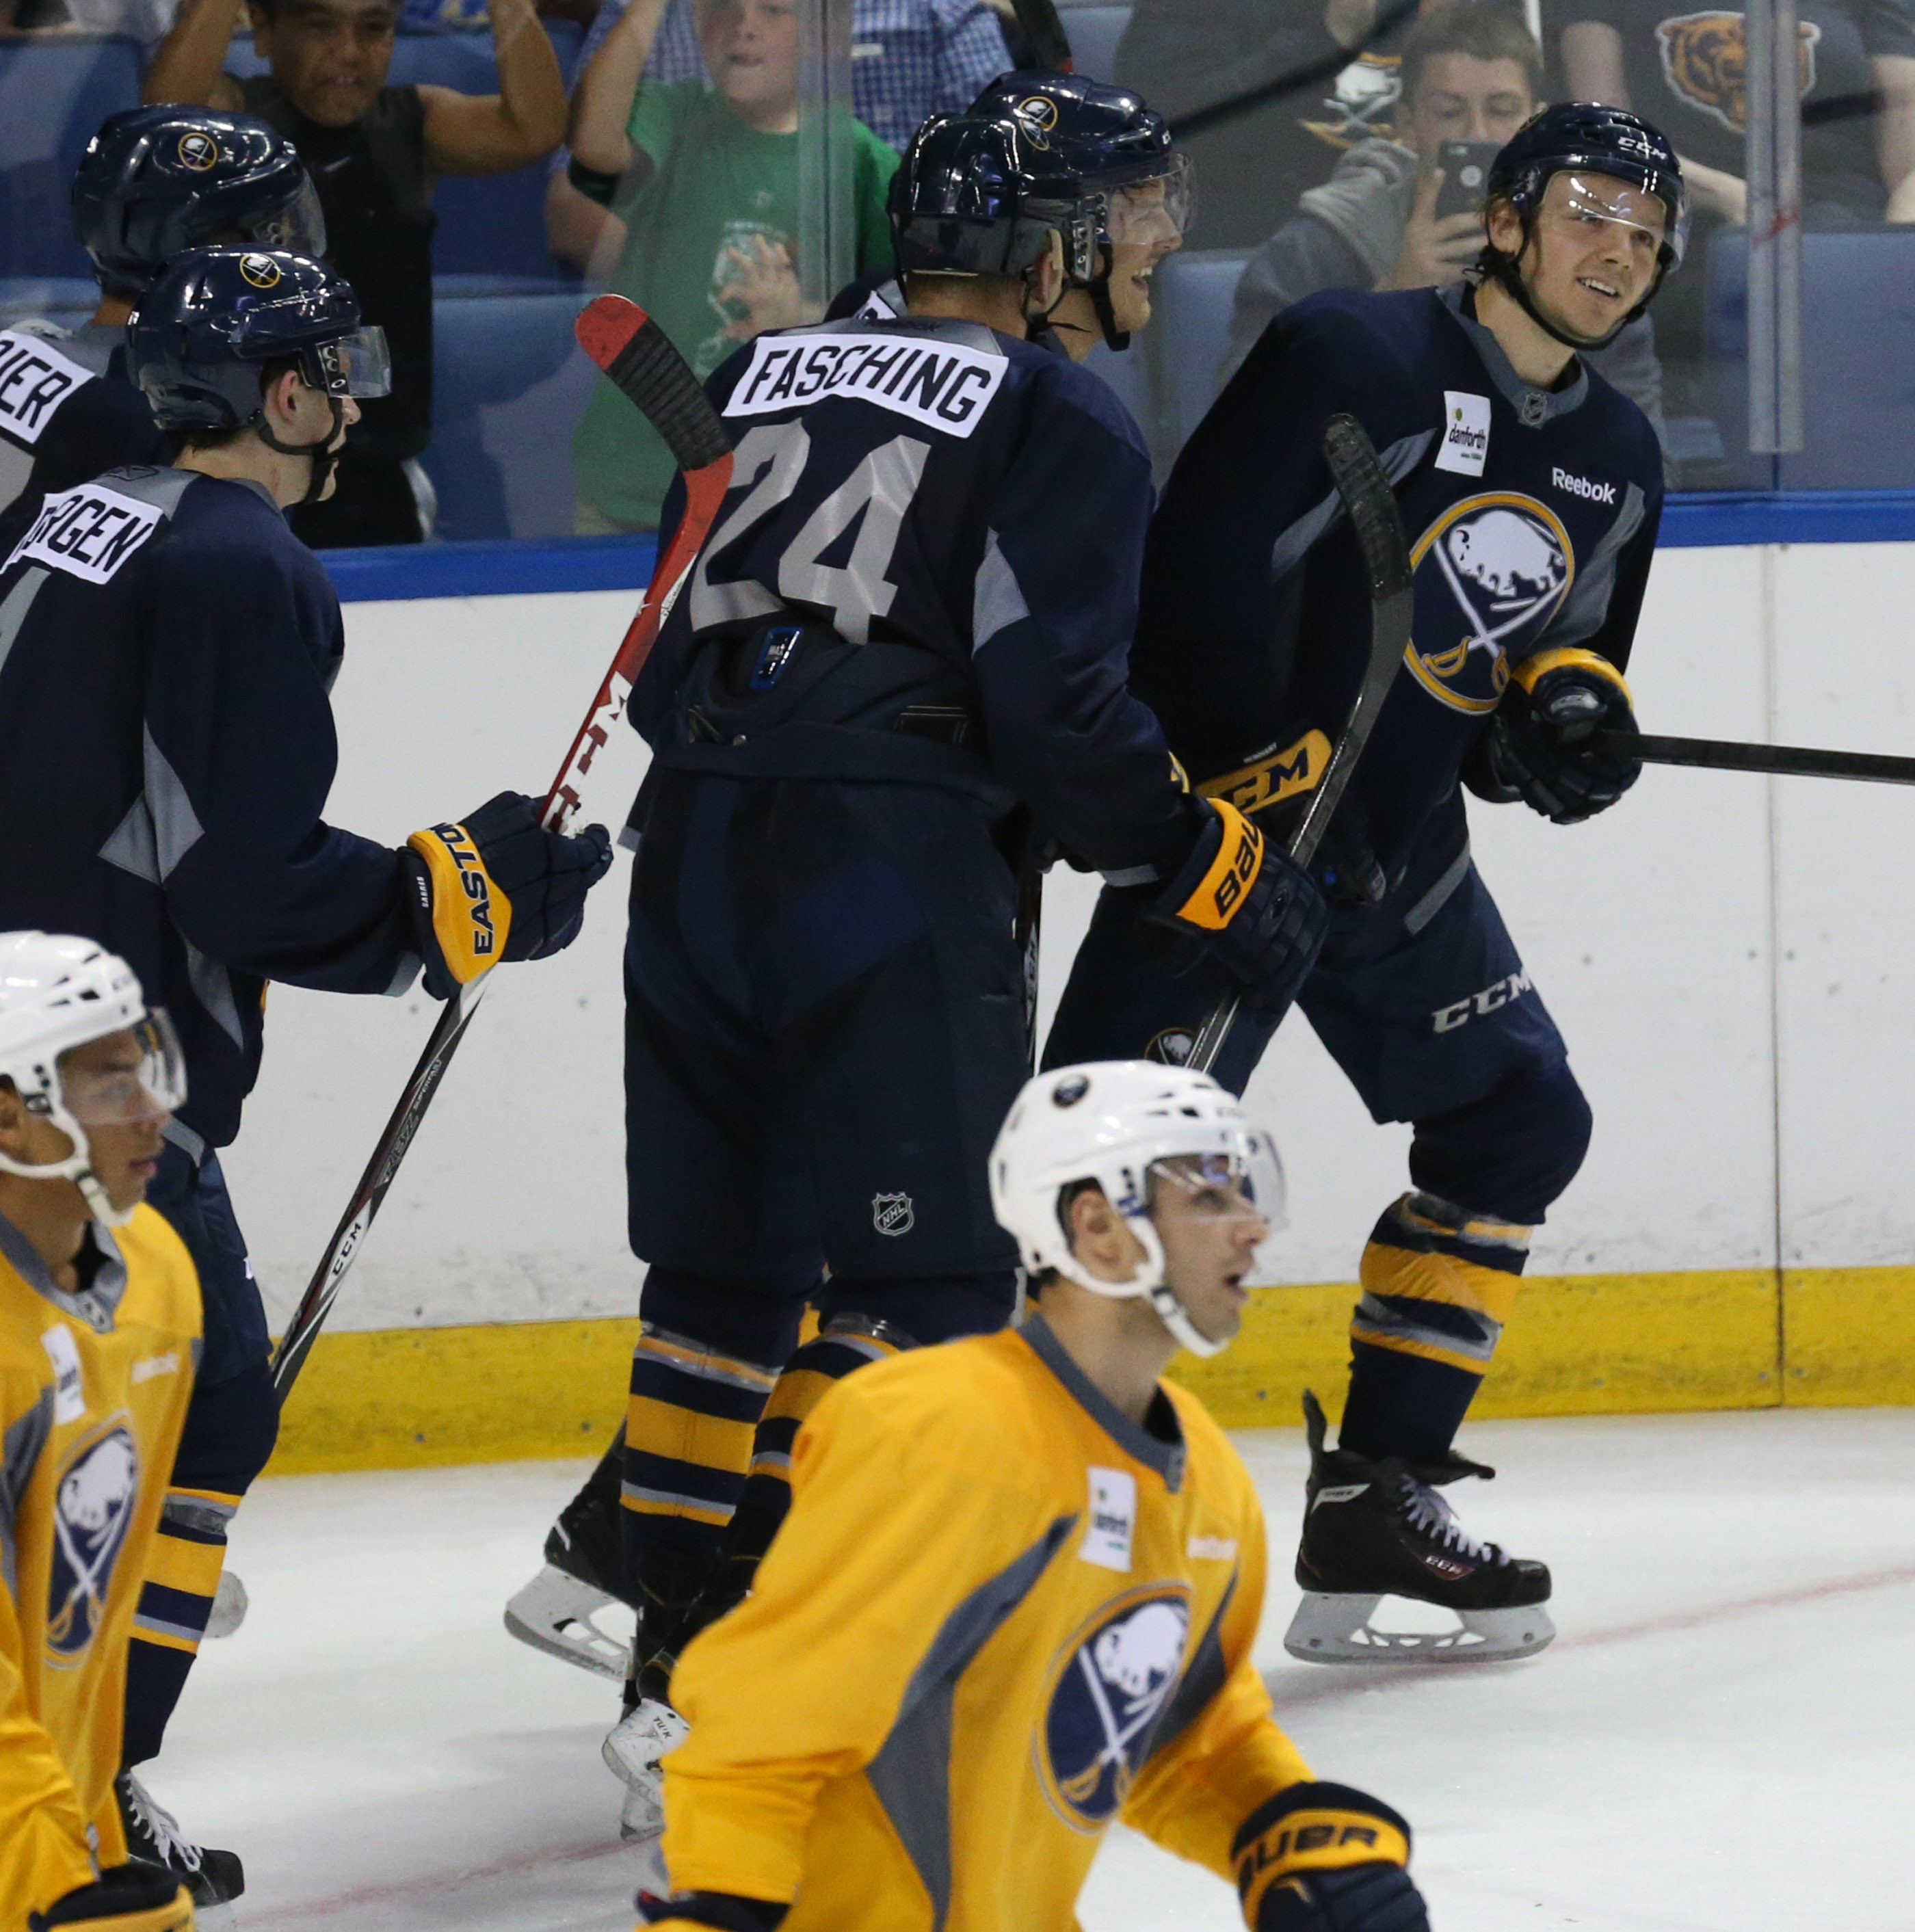 Sabres Blue's Sam Reinhart scores a goal in the second period of the Sabres' Blue and Gold Scrimmage at First Niagara Center in Buffalo on Friday.